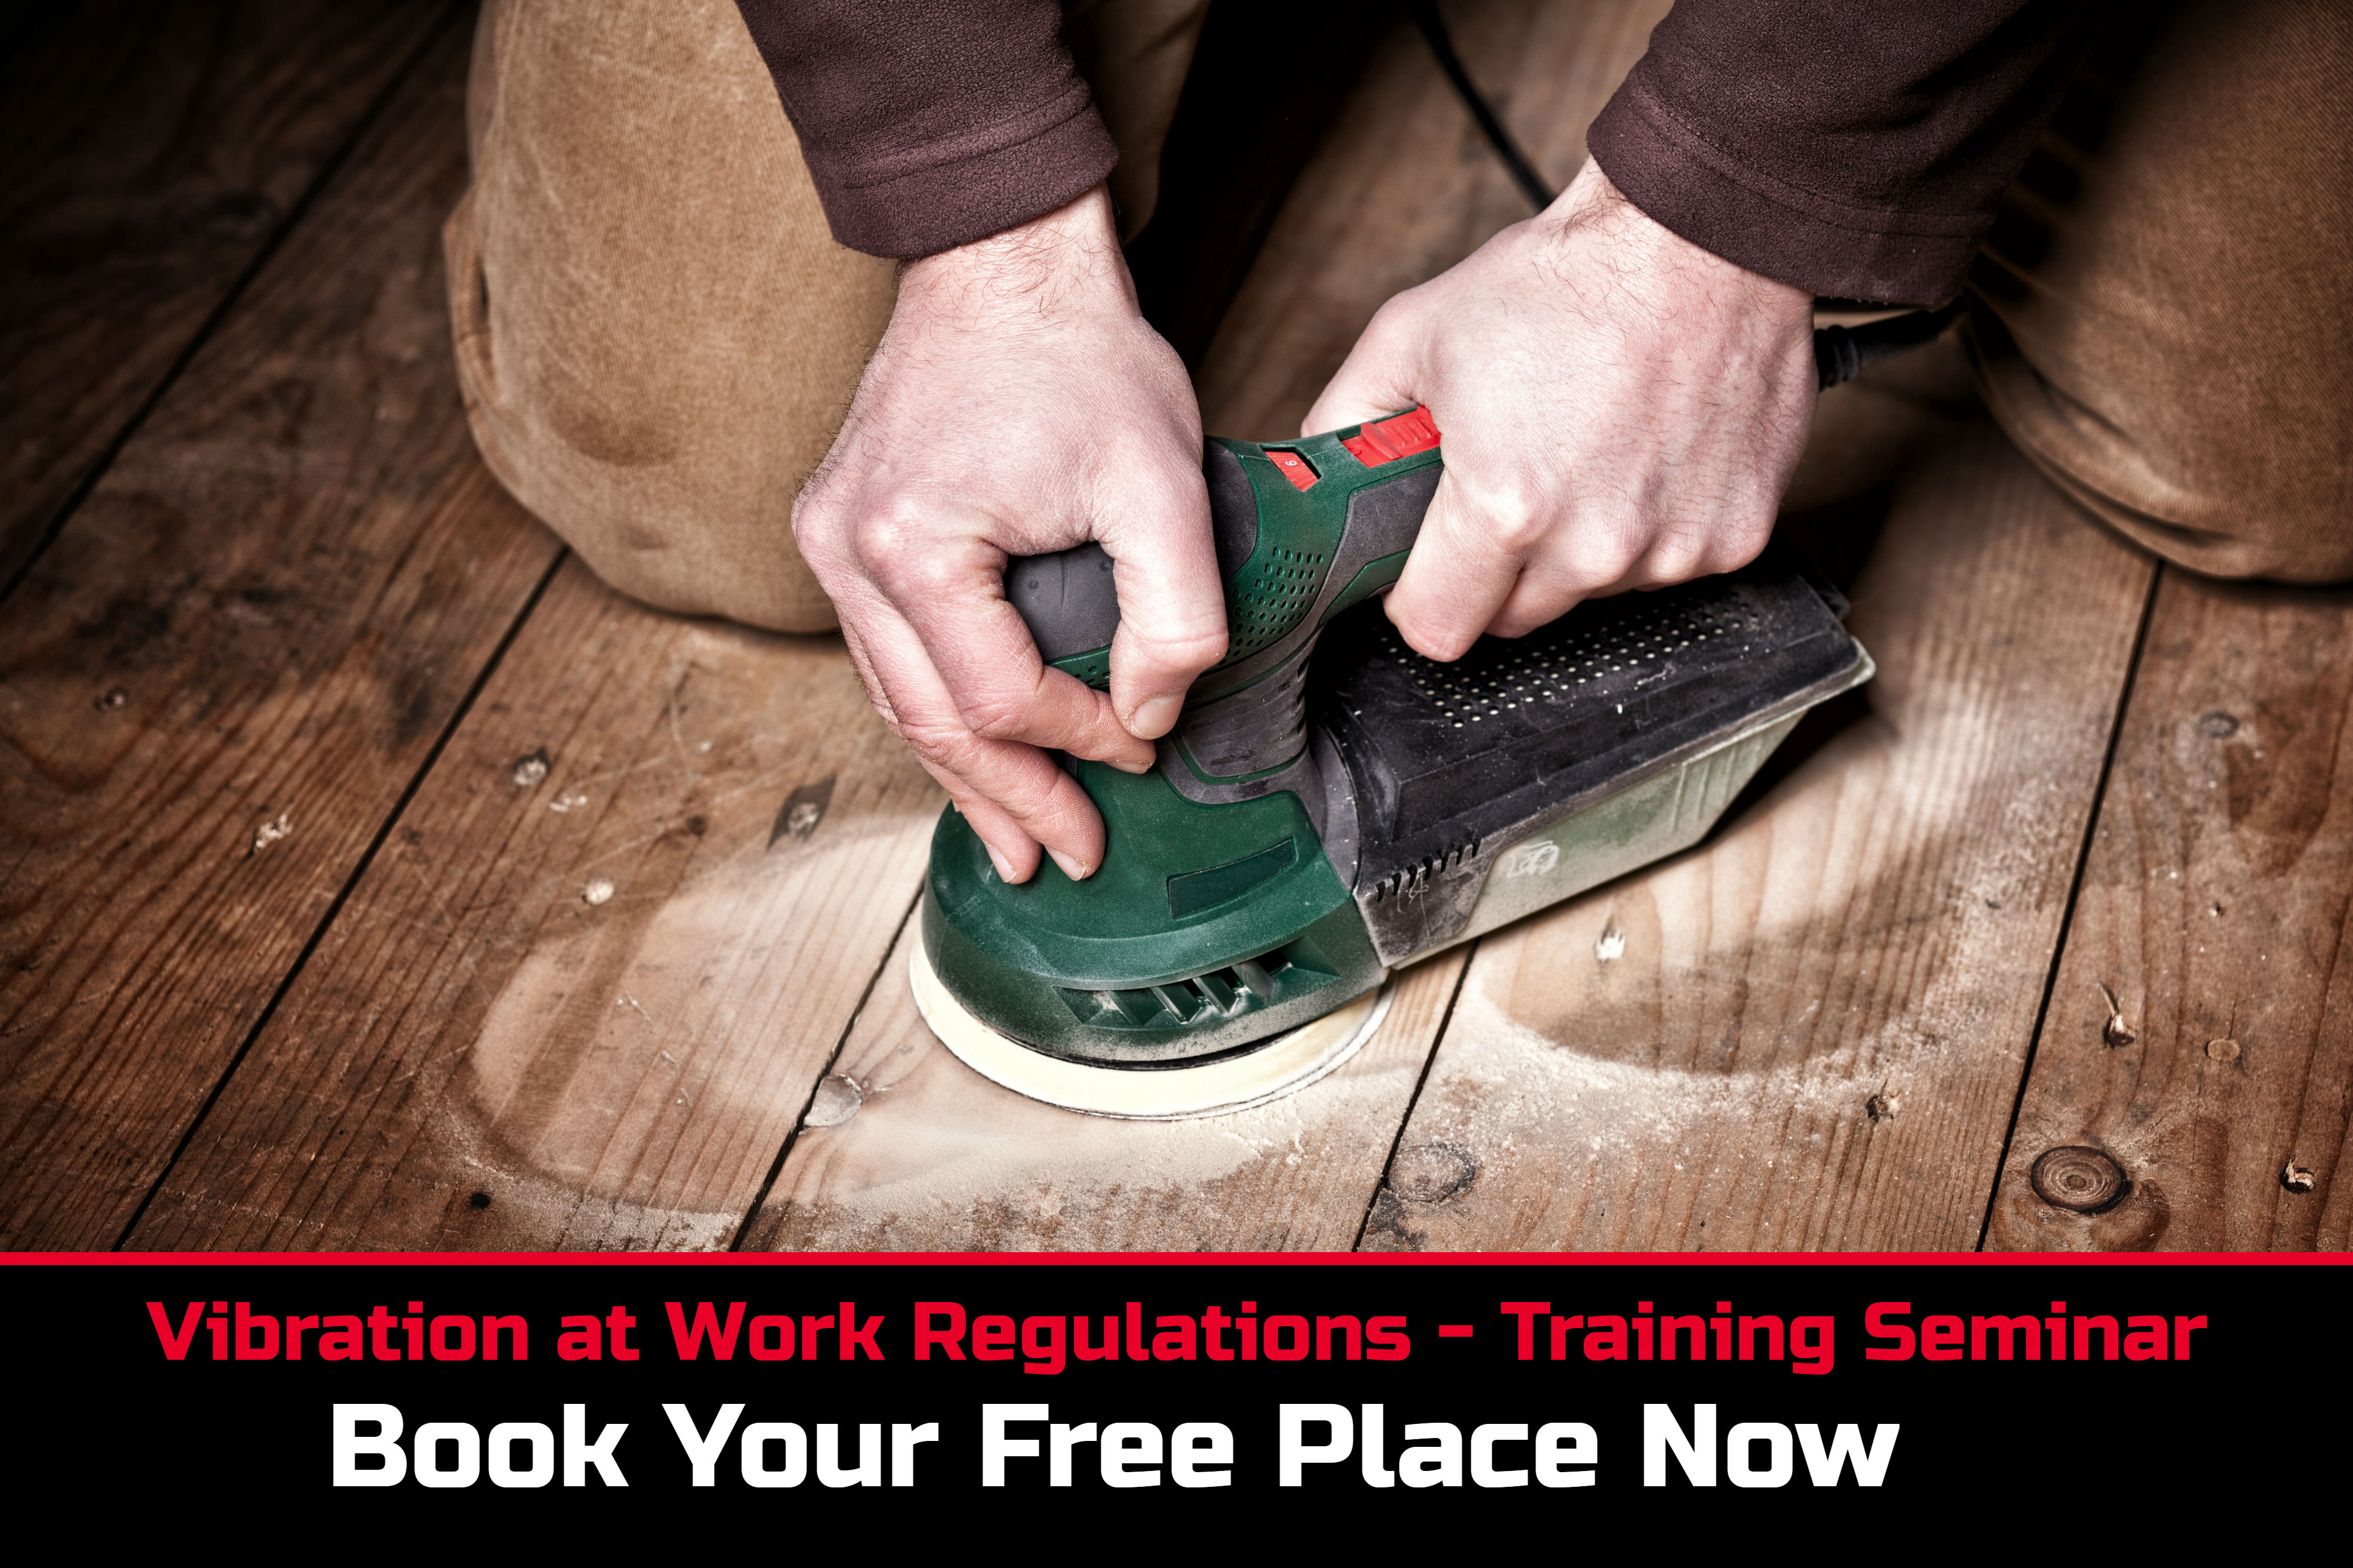 Vibration Safety Training